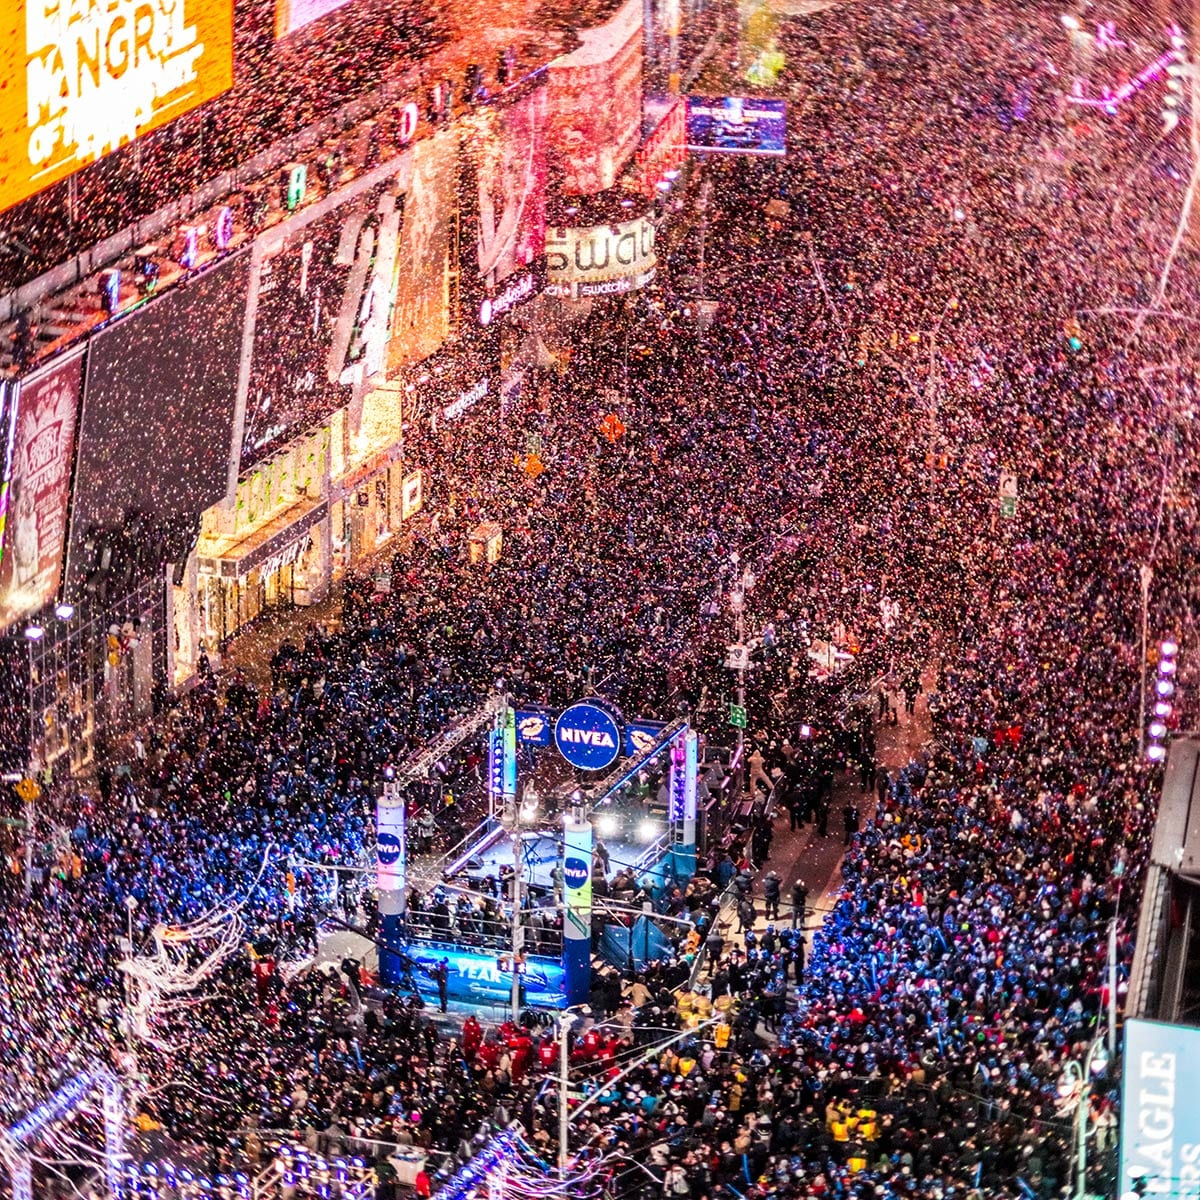 Confetti falling on Times Square and crowd gathered around stage